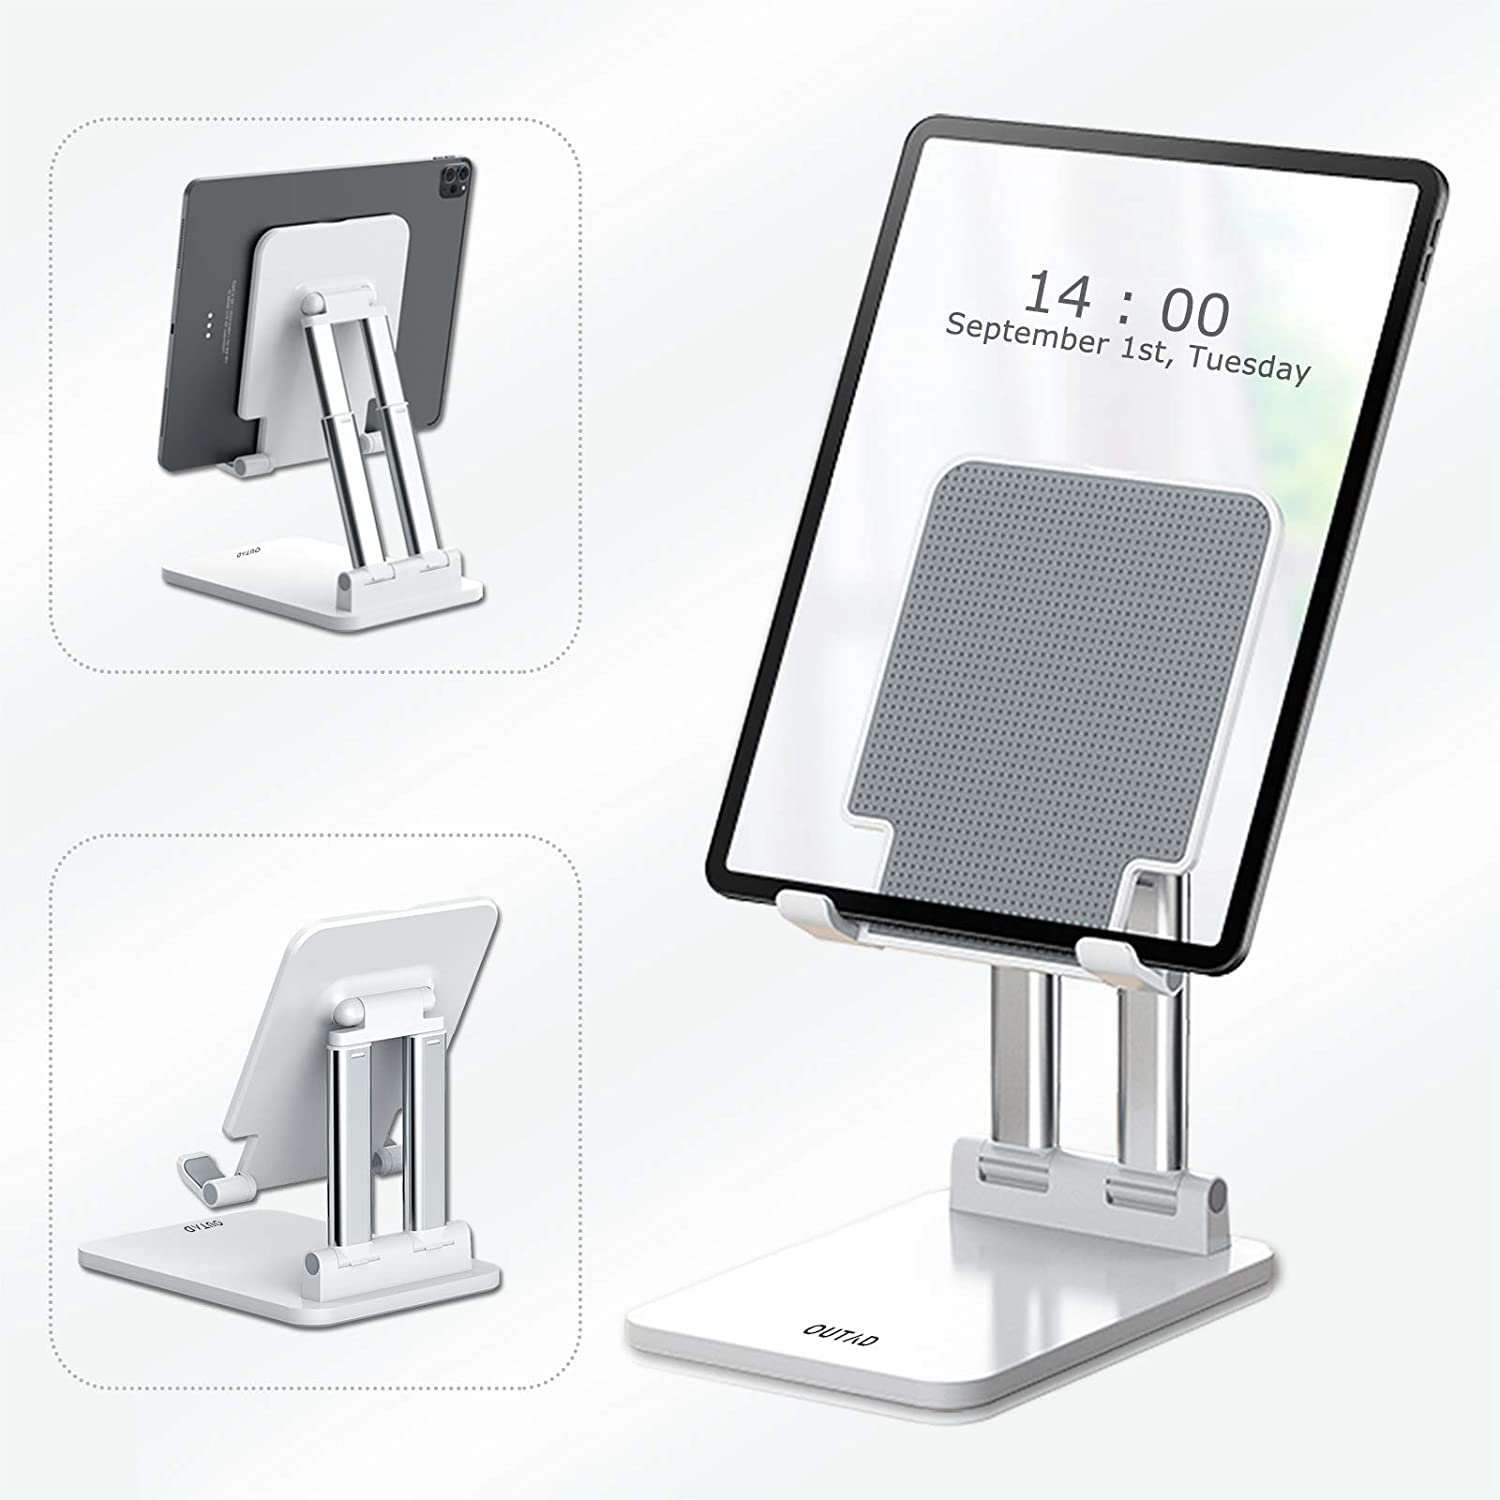 OUTAD Foldable Tablet Stand, Adjustable Extendable Collapsible Desktop Holder Dock Compatible with iPad Pro 12.9/11/10.5 inch, Air Mini 4 3 2, Kindle, Samsung Galaxy Tab, Surface Pro, E-Reader, White